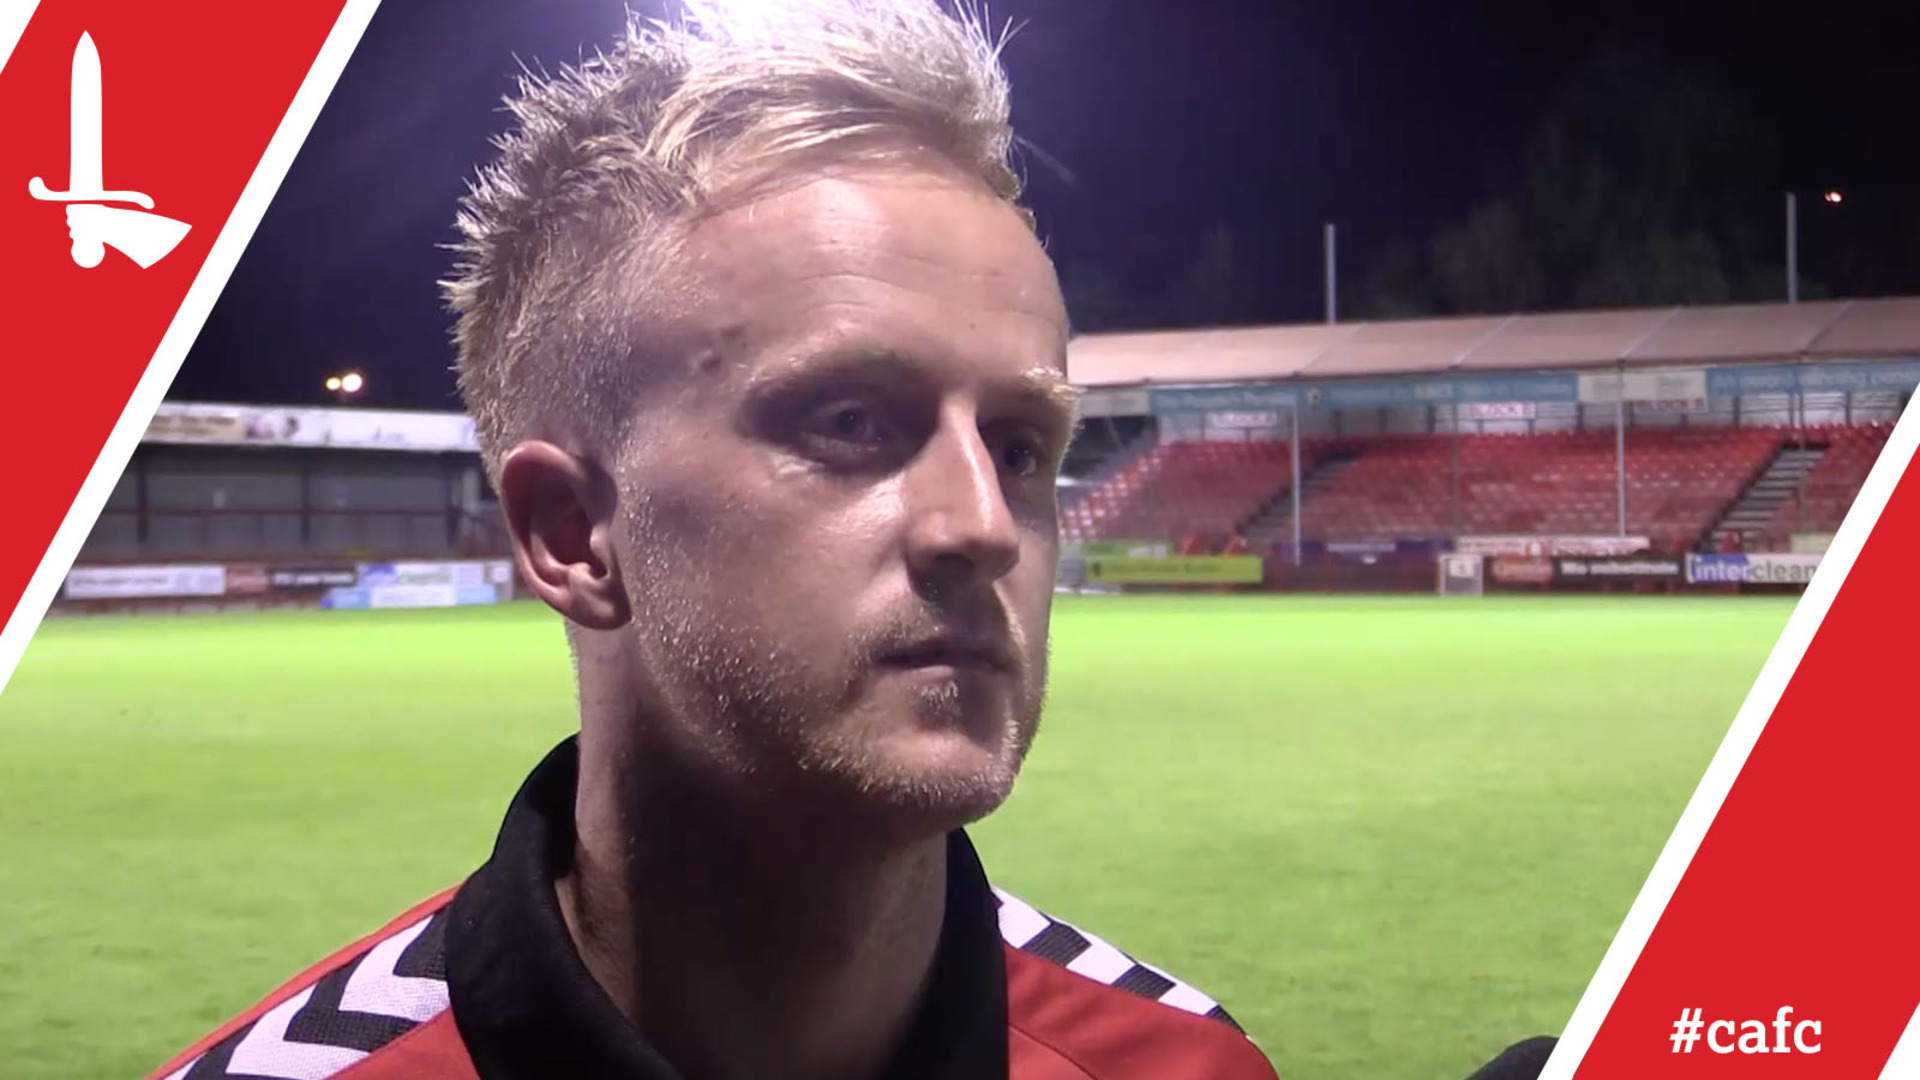 Ben Reeves pleased to get off the mark for Charlton